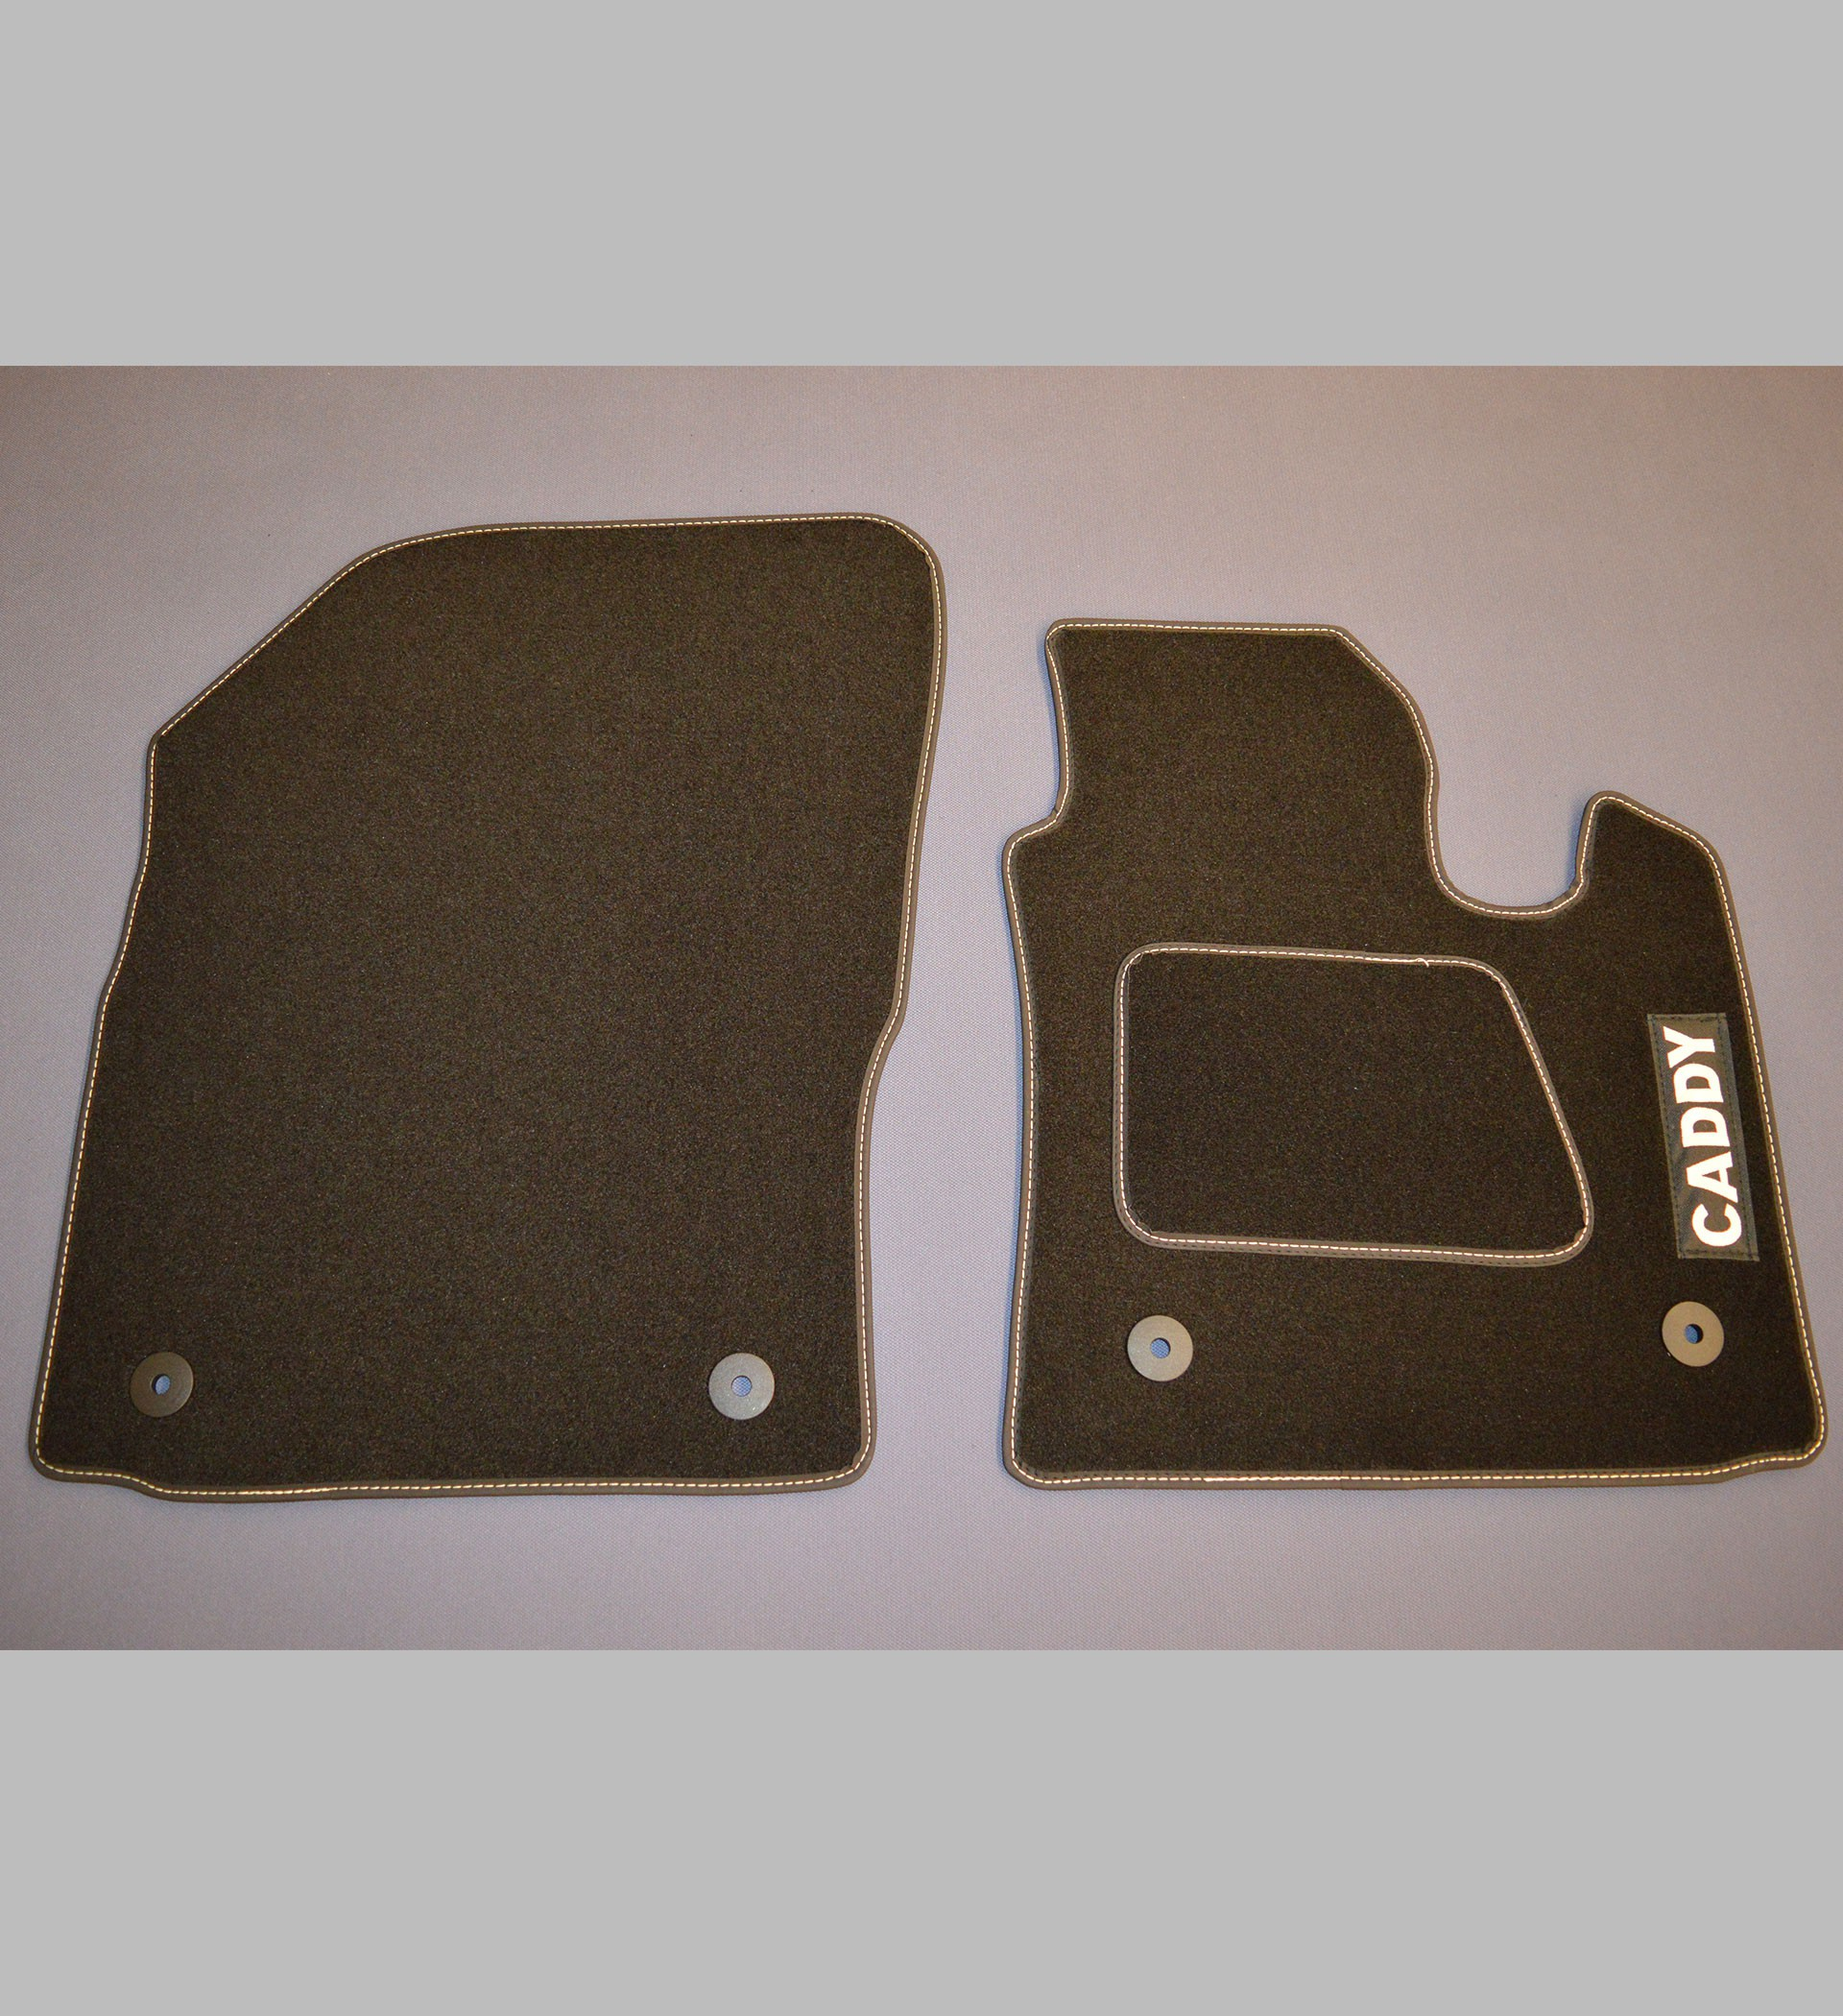 Volkswagen Vw Caddy Custom Floor Mats With Caddy Logo Car